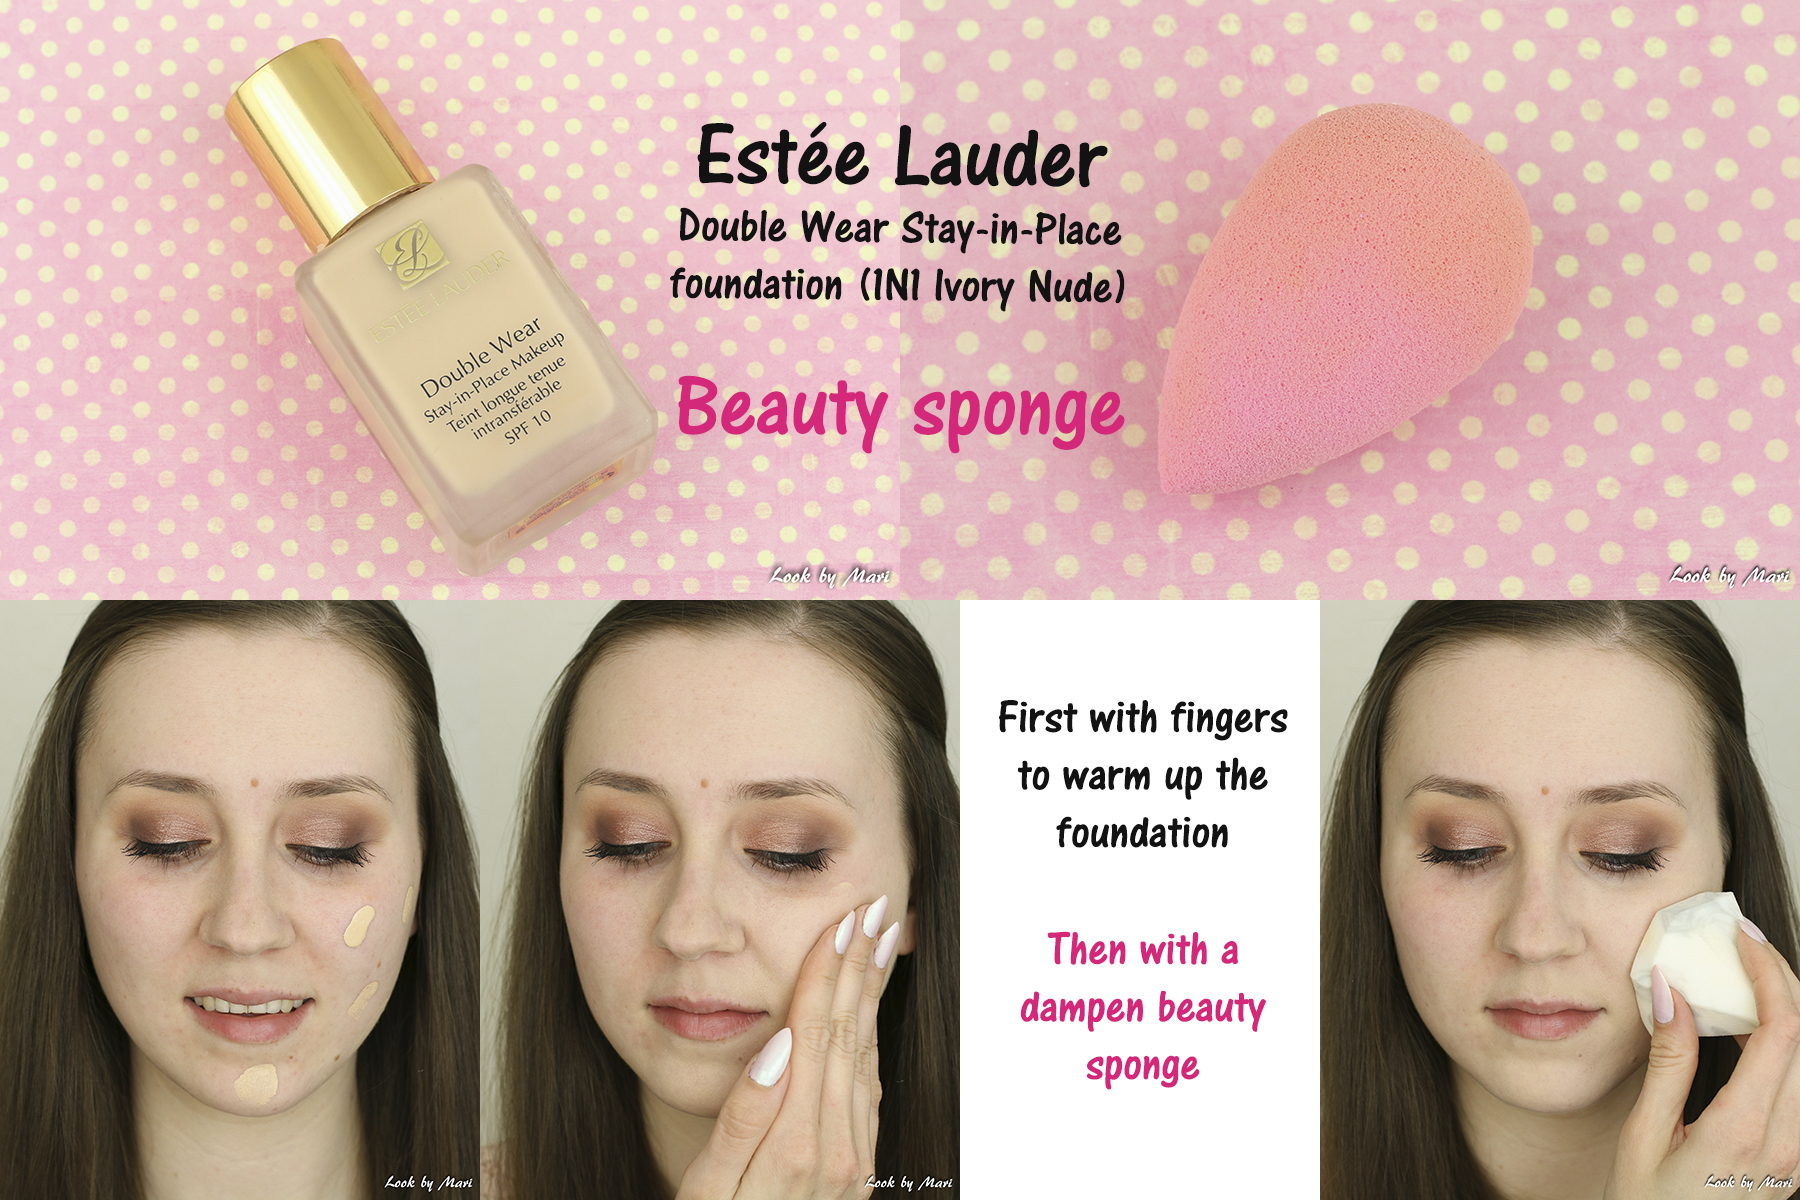 8 estee lauder double wear foundation review tips tutorial kokemuksia